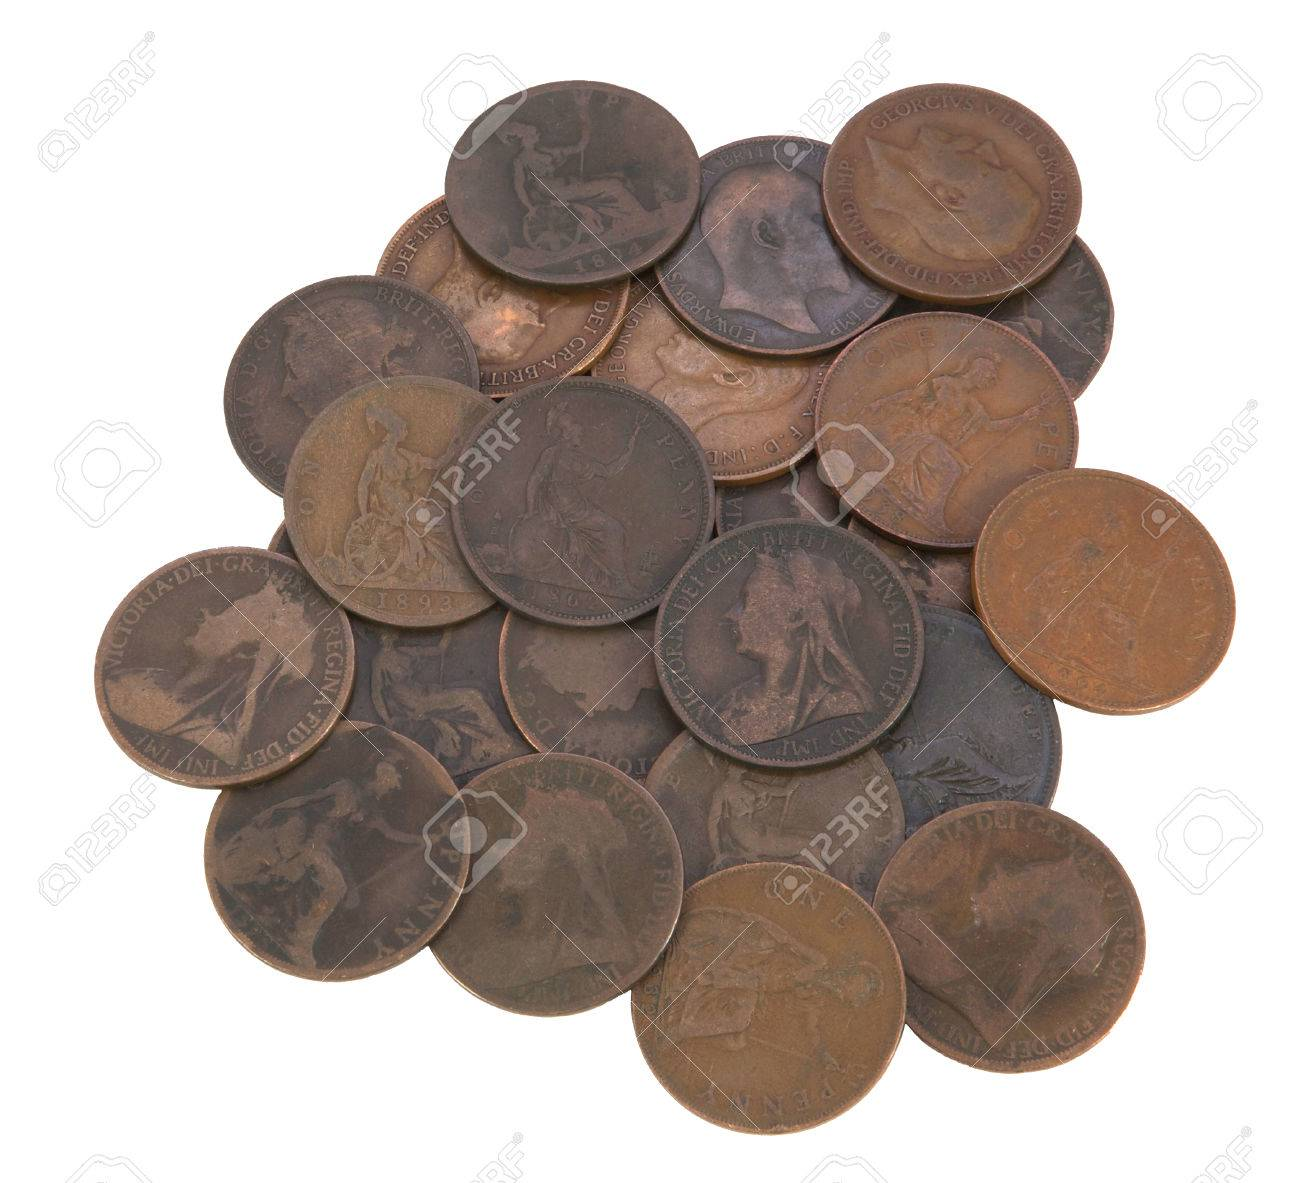 Pile Of Old Coins, Victorian, Edwardian, Georgian Pennies